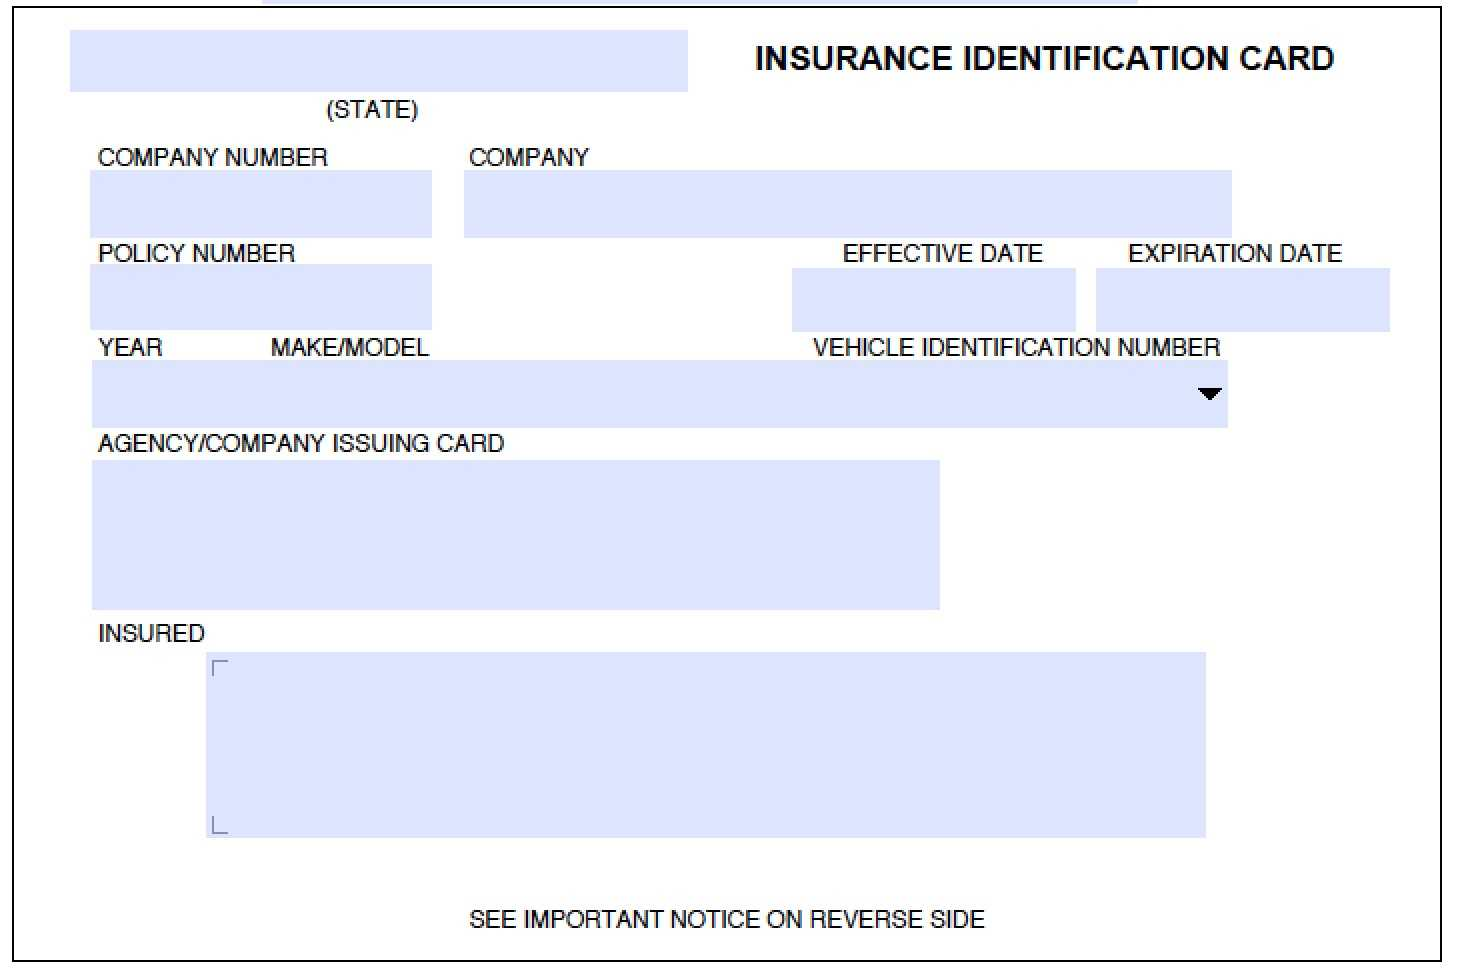 Auto Insurance Templates - Mahre.horizonconsulting.co Inside Car Insurance Card Template Download